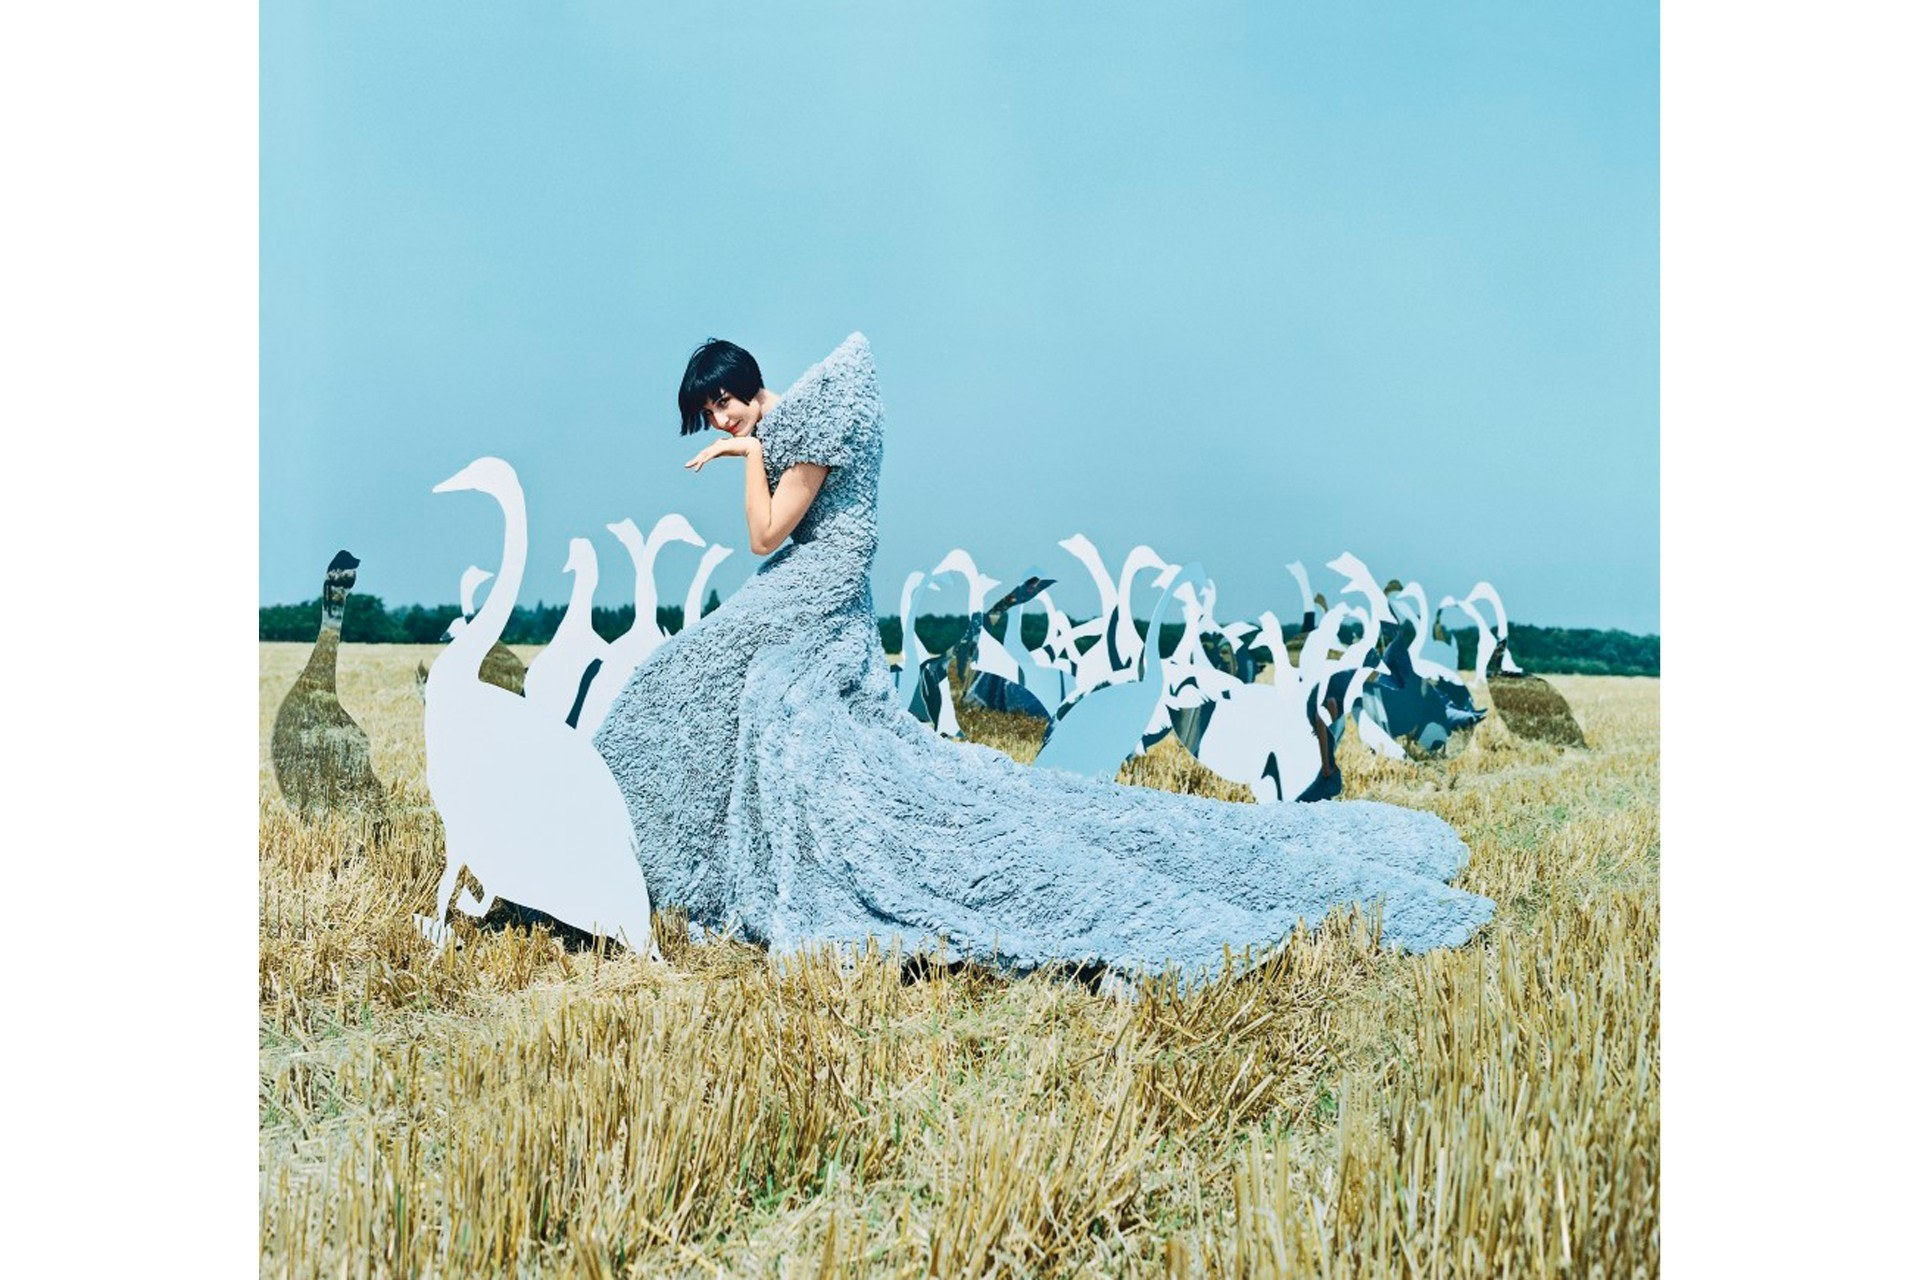 tim-walker-vogue-6-27mar14-tw_b